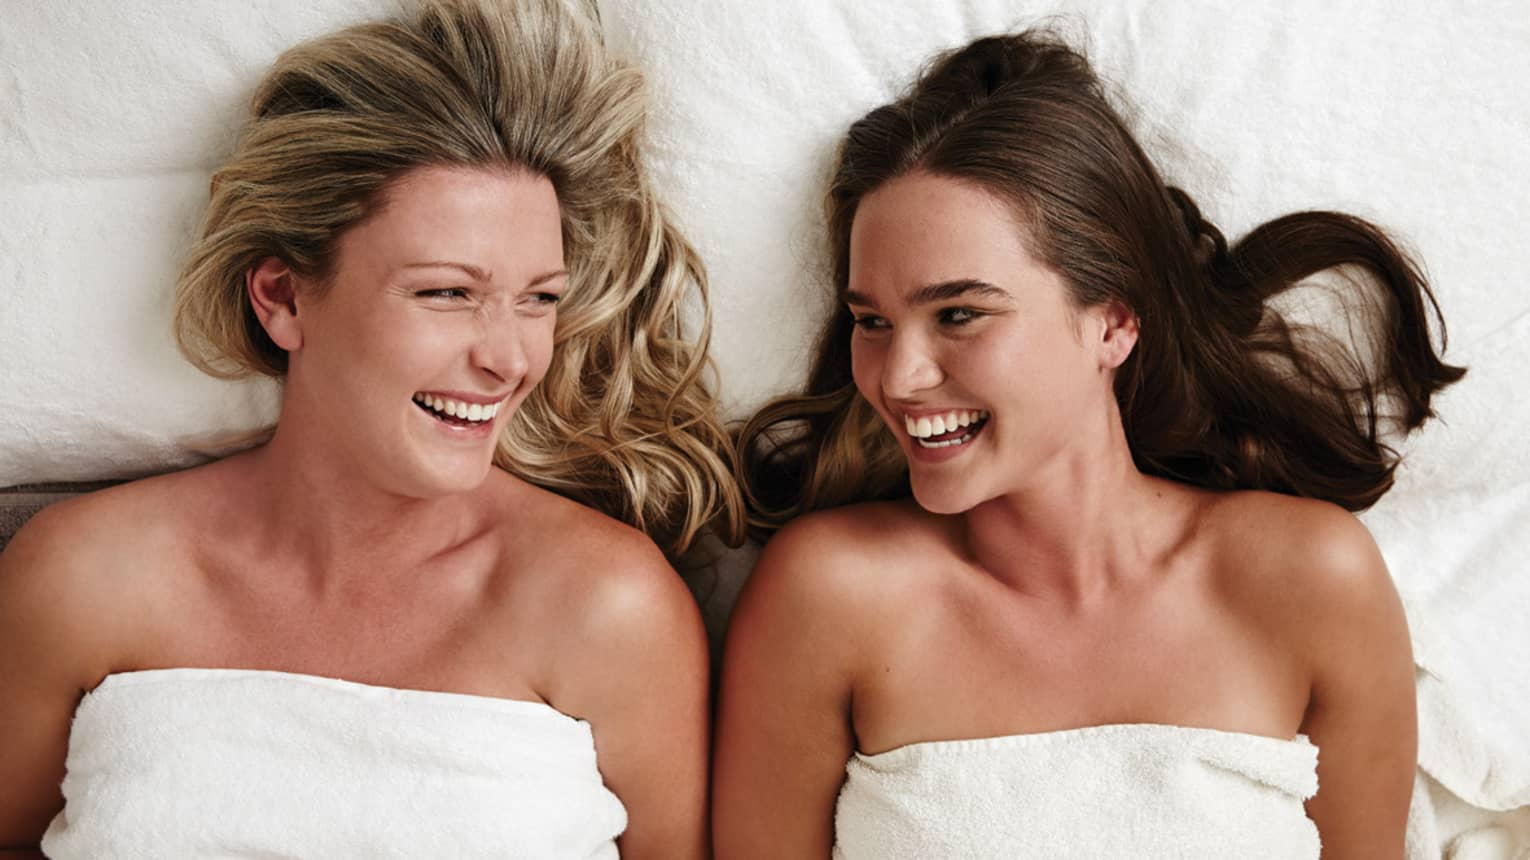 Two laughing women wearing white towels lie on massage table in spa